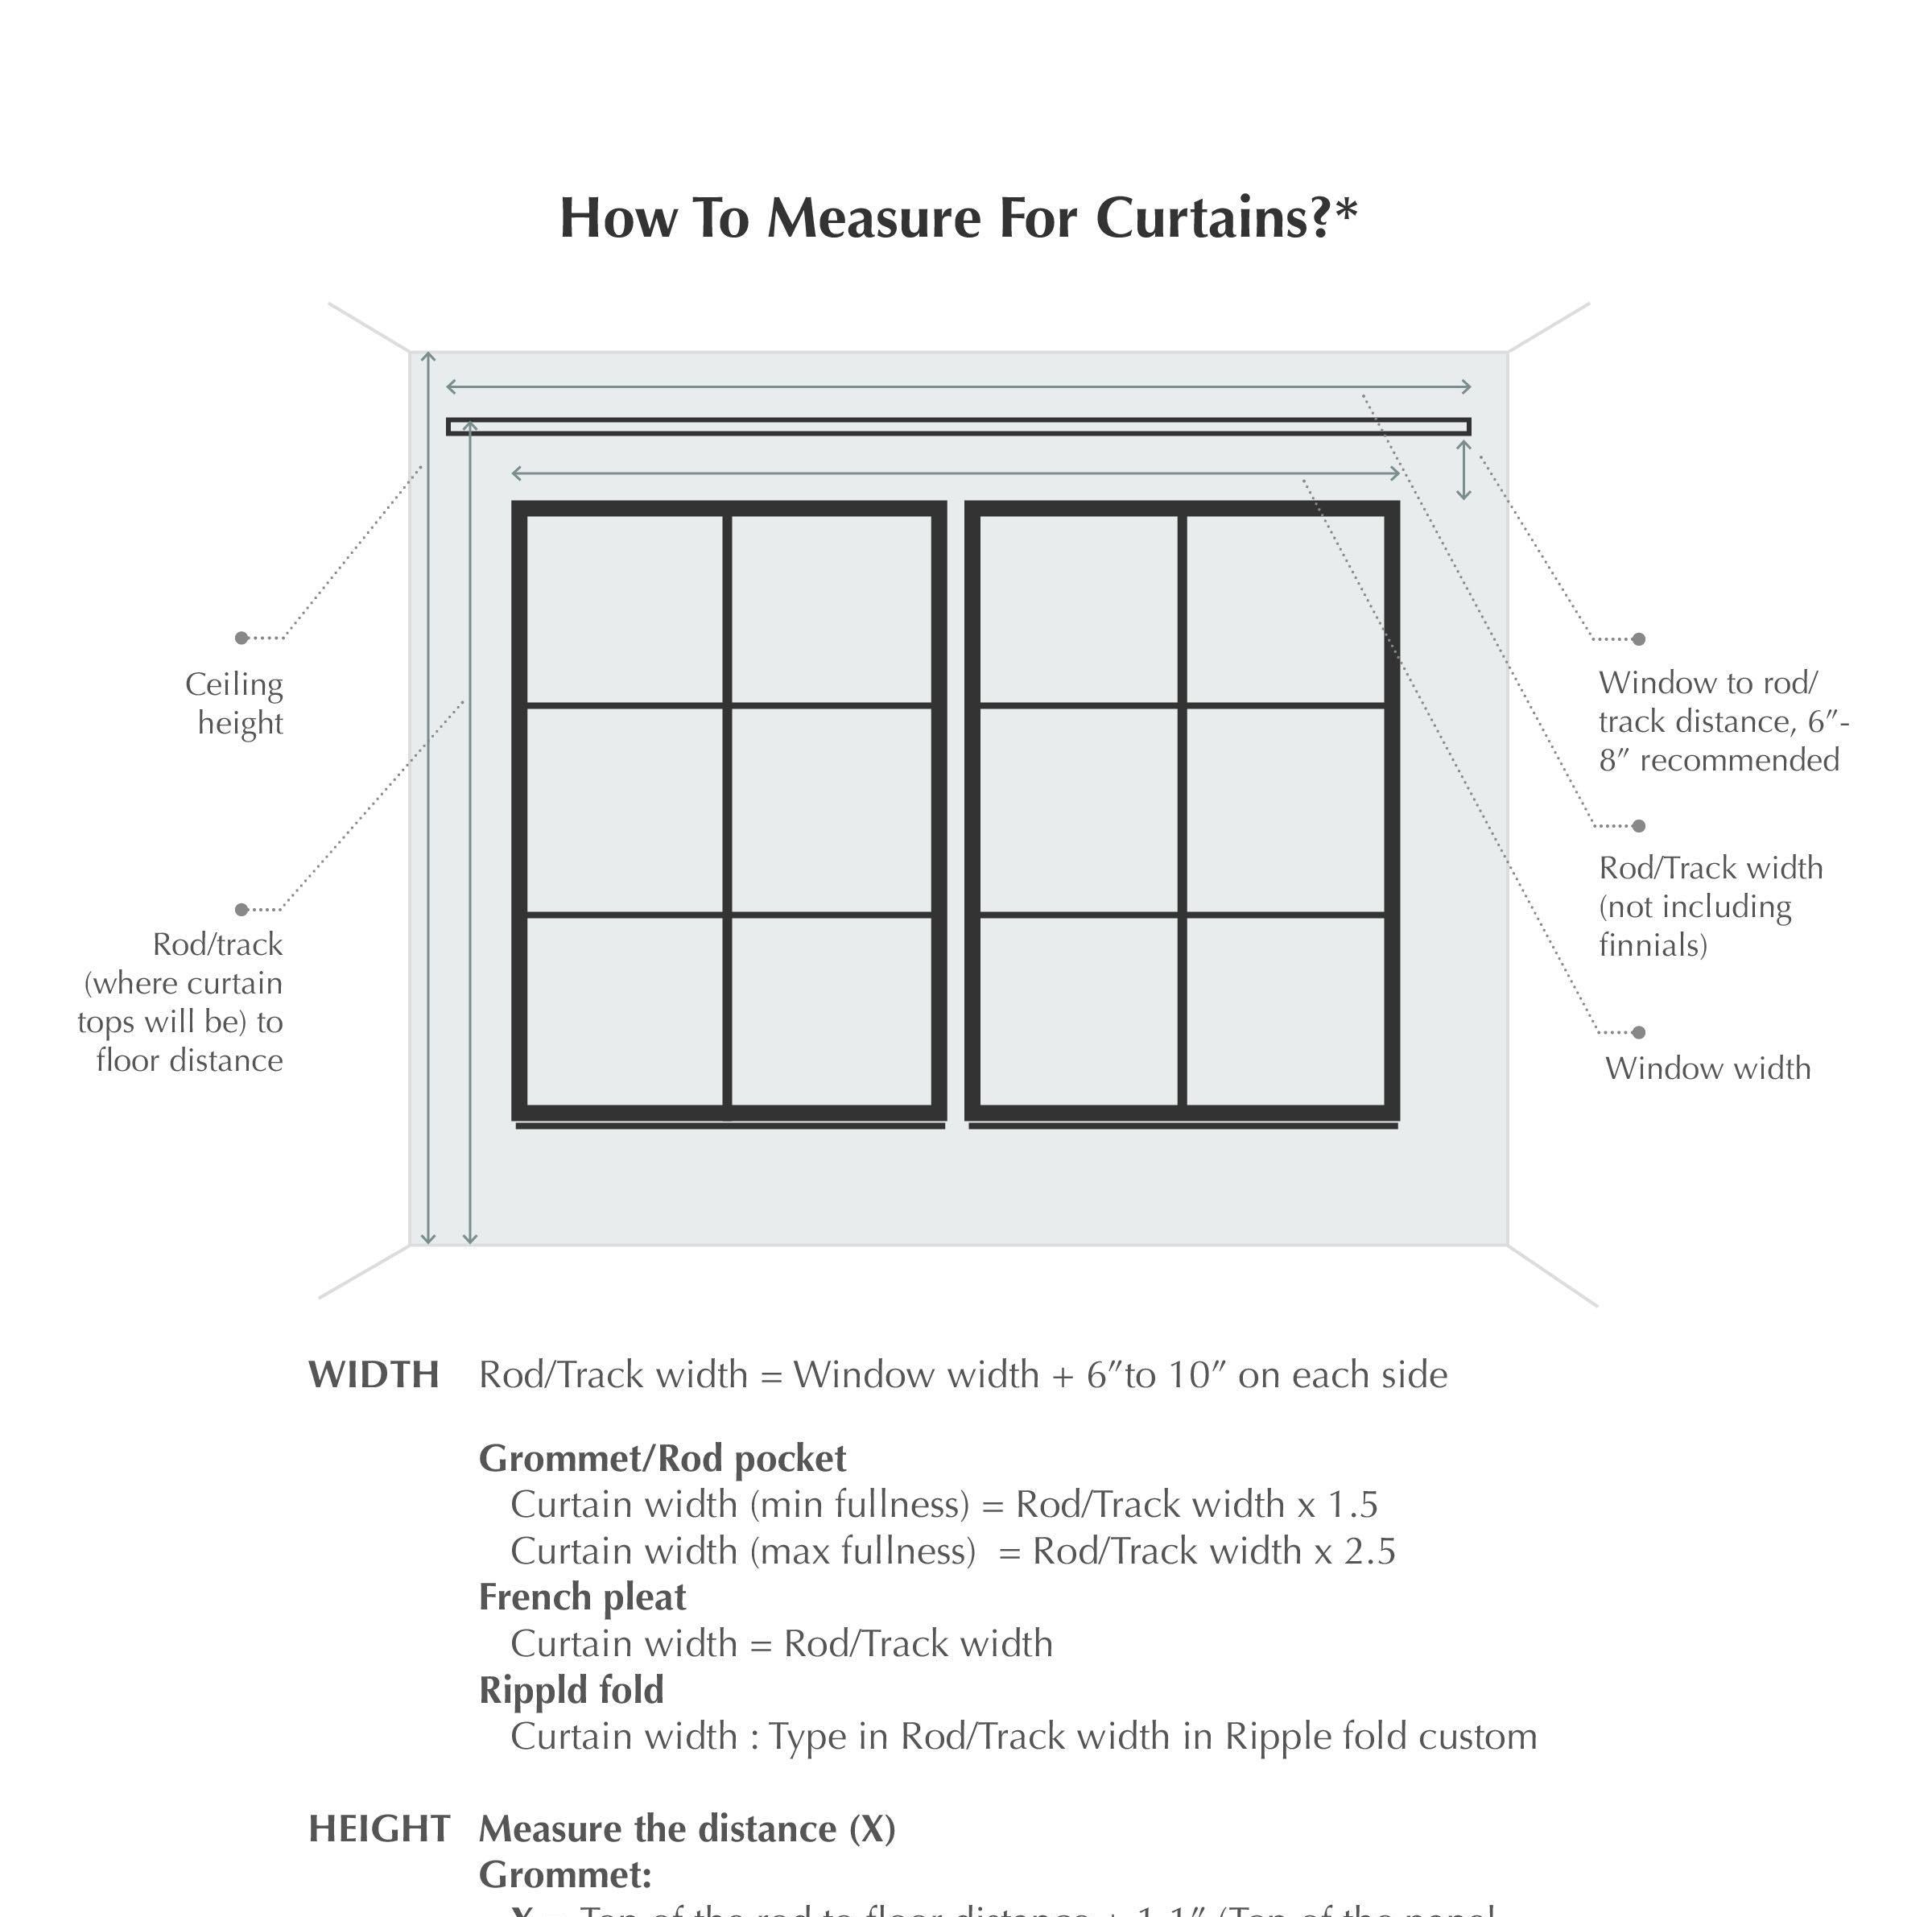 How to measure for curtains?